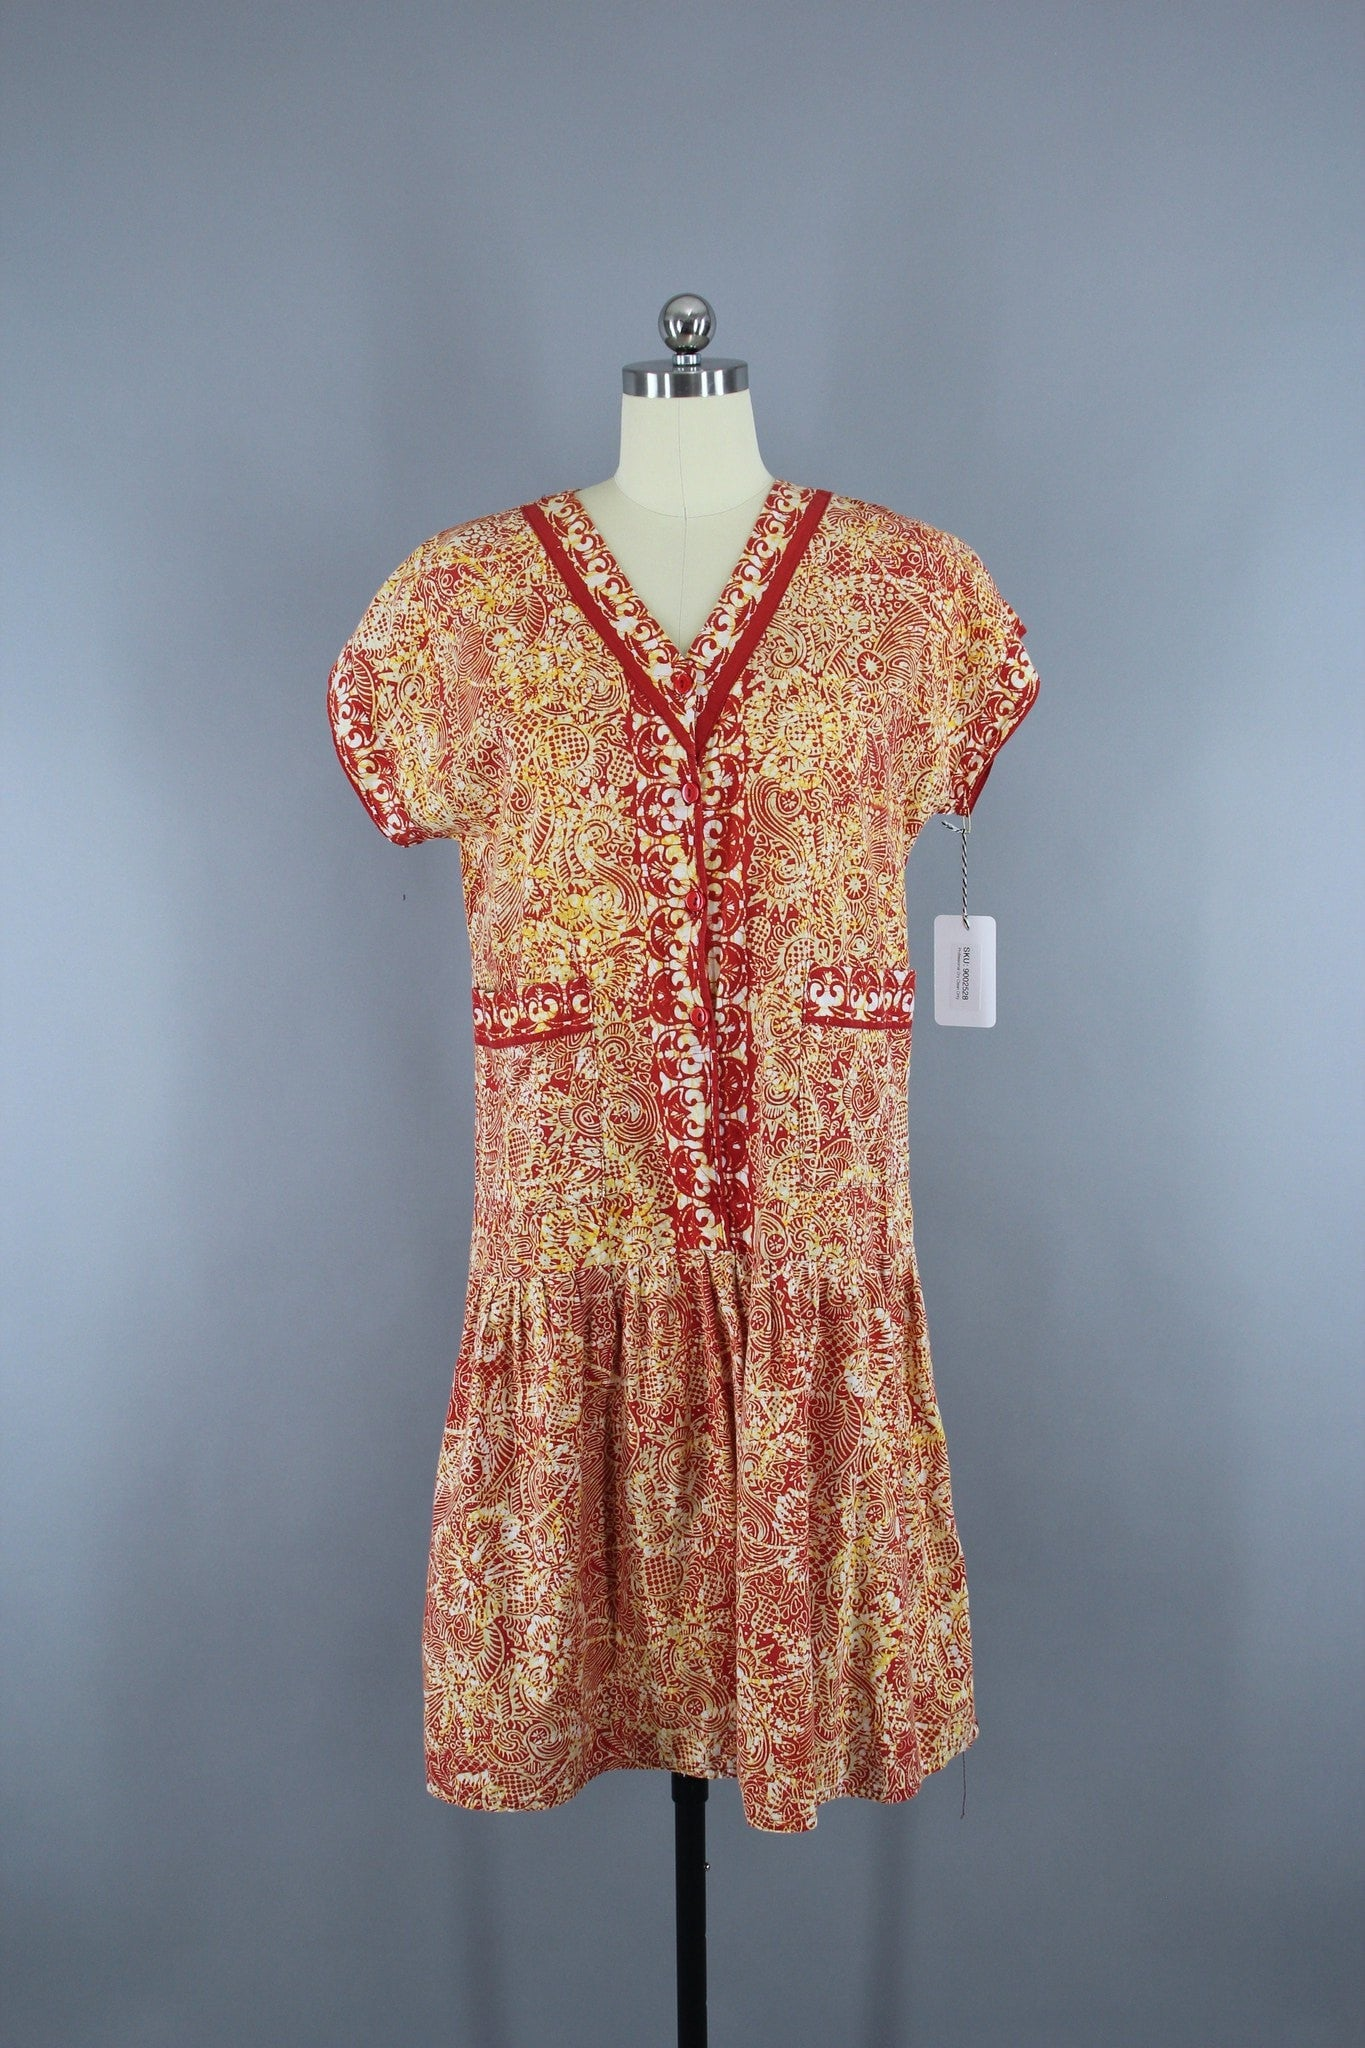 1960s Vintage Orange Red Batik Drop Waist Cotton Day Dress Dress ThisBlueBird